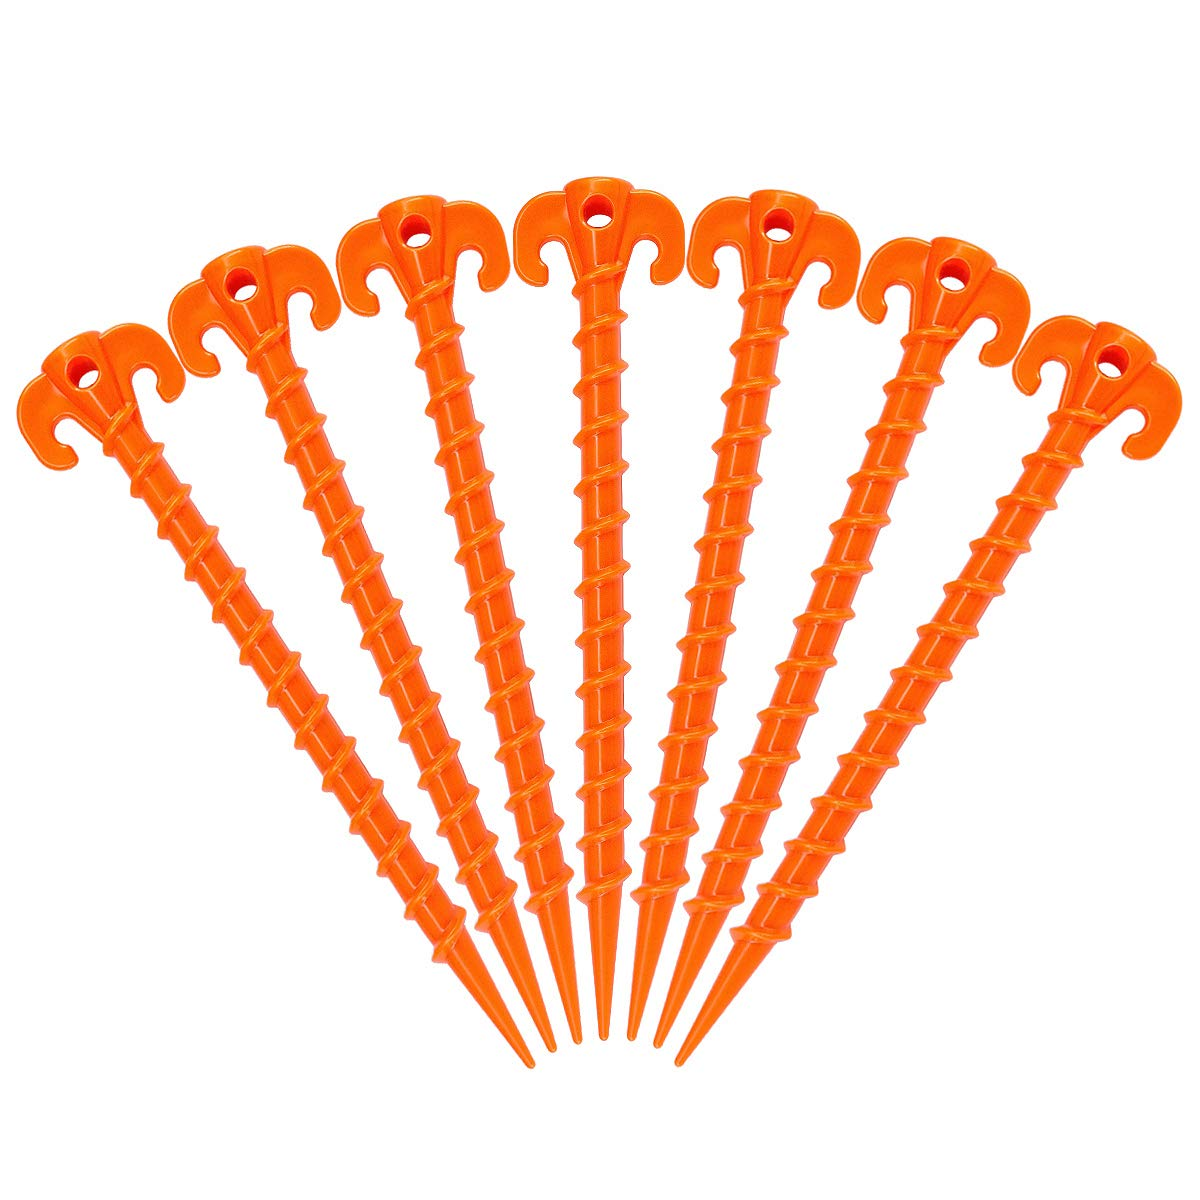 Hikemax Spiral Plastic Tent Stakes 15 Pack - 10 Inch Heavy Duty Beach Tent Pegs Canopy Stakes - Essential Gear for Camping, Backpacking, Gardening and More by Hikemax